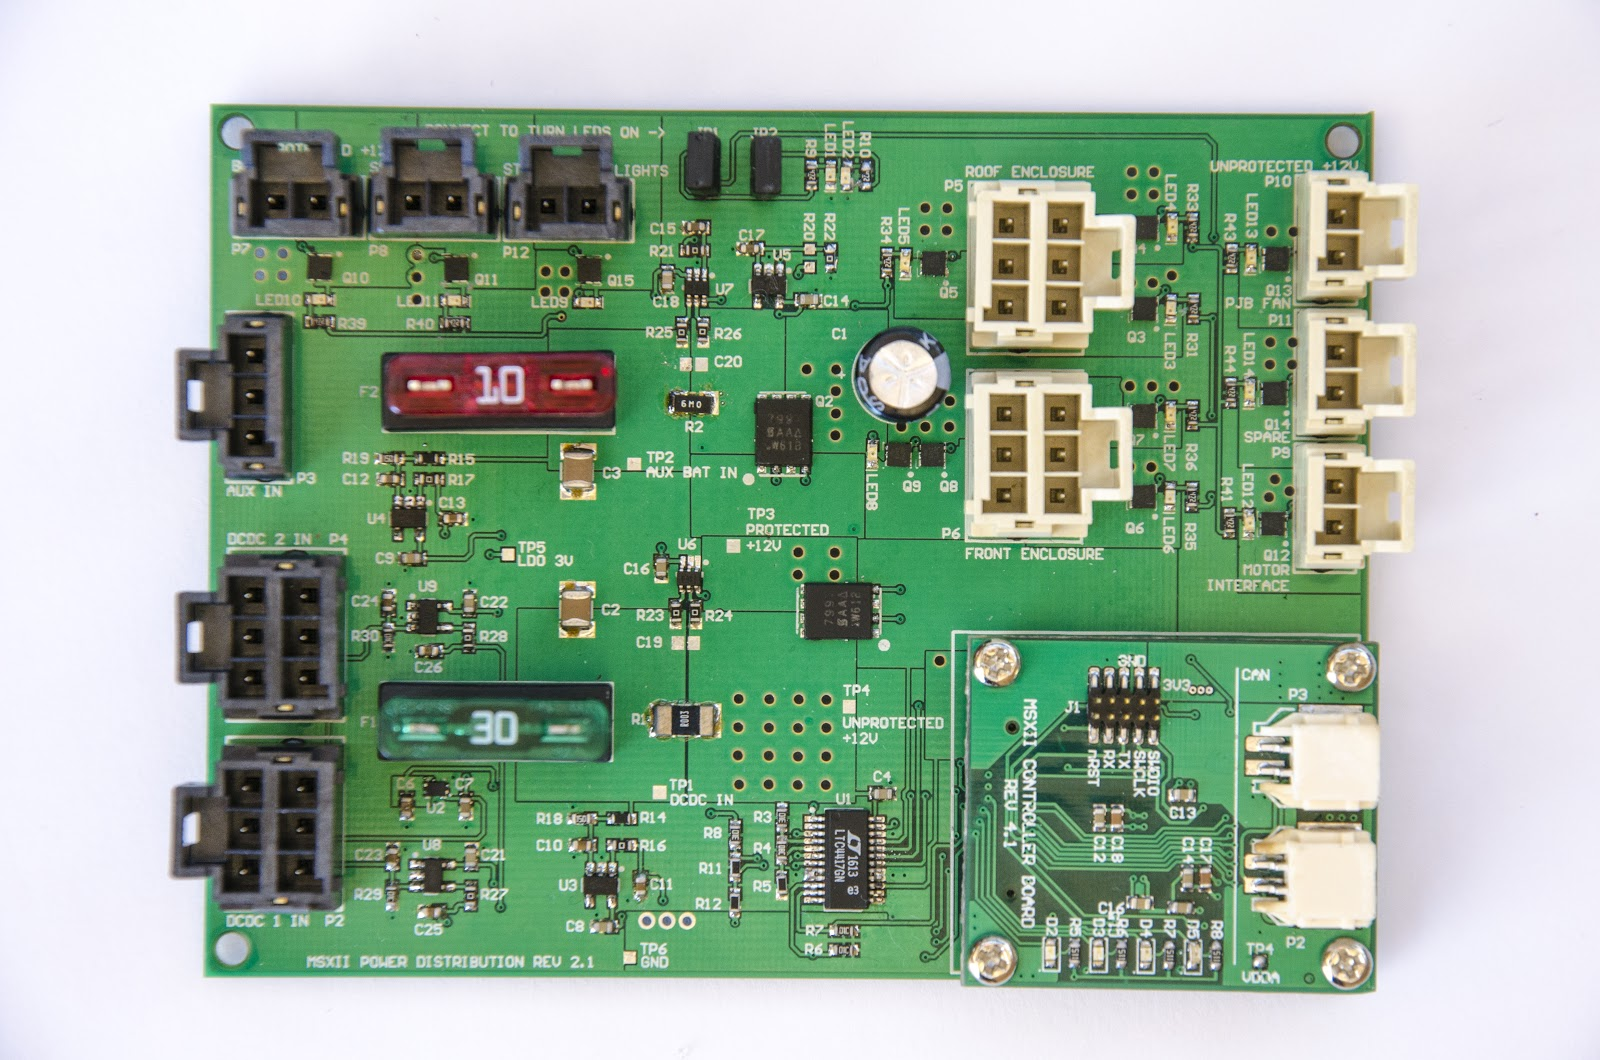 Midsun_PowerDistribution_Board.jpg